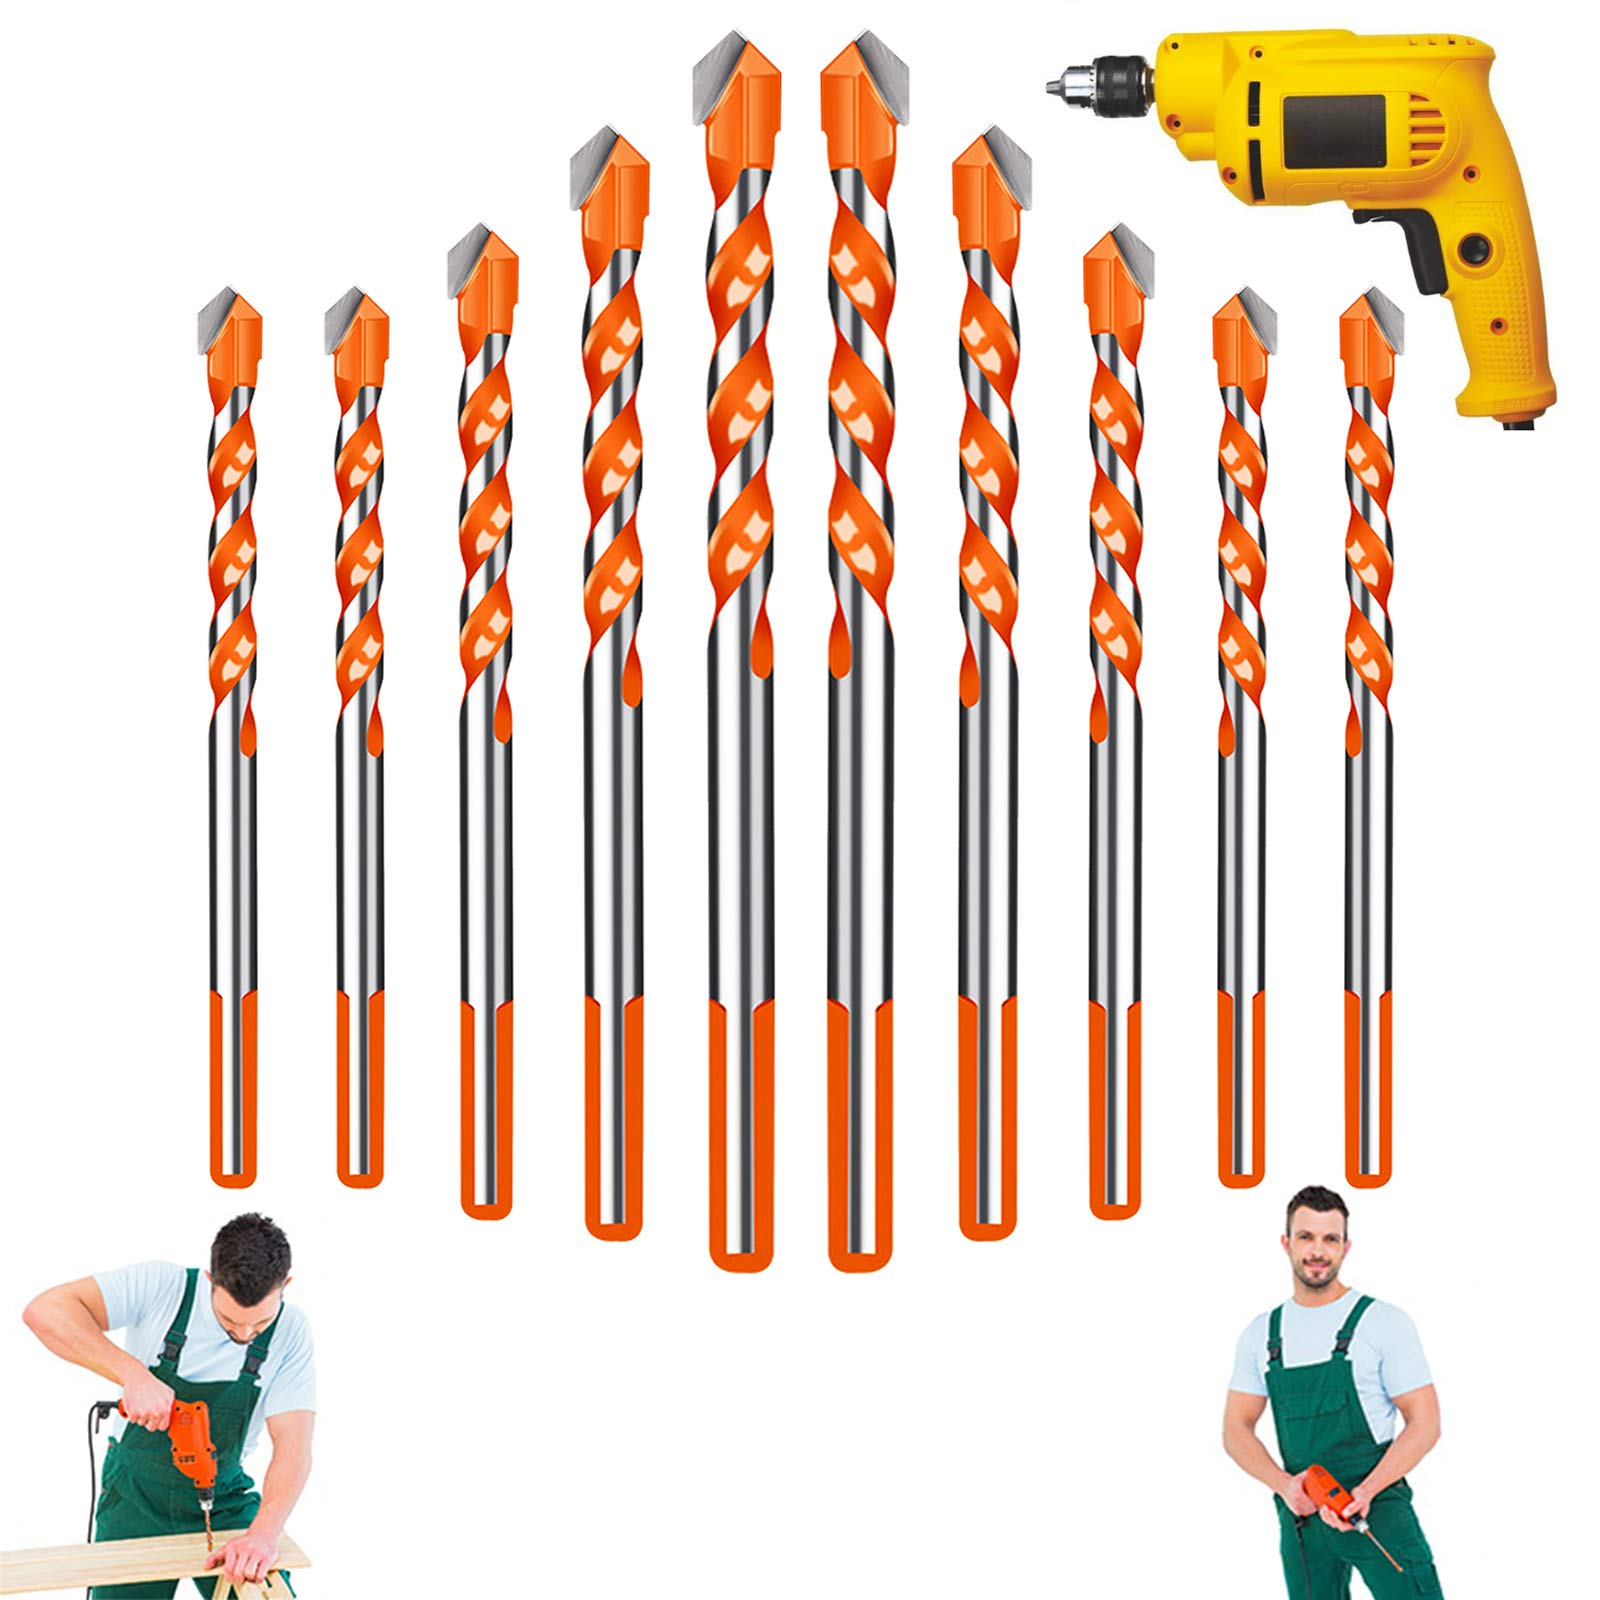 10 Pcs Ultimate Drill Bits, Triangle Masonry Drill Bit Set, Multifunctional Concrete Drill Bits, Carbide Drill bit Set for Wood, Glass and Tile, 6/6/8/10/12 mm (Orange)